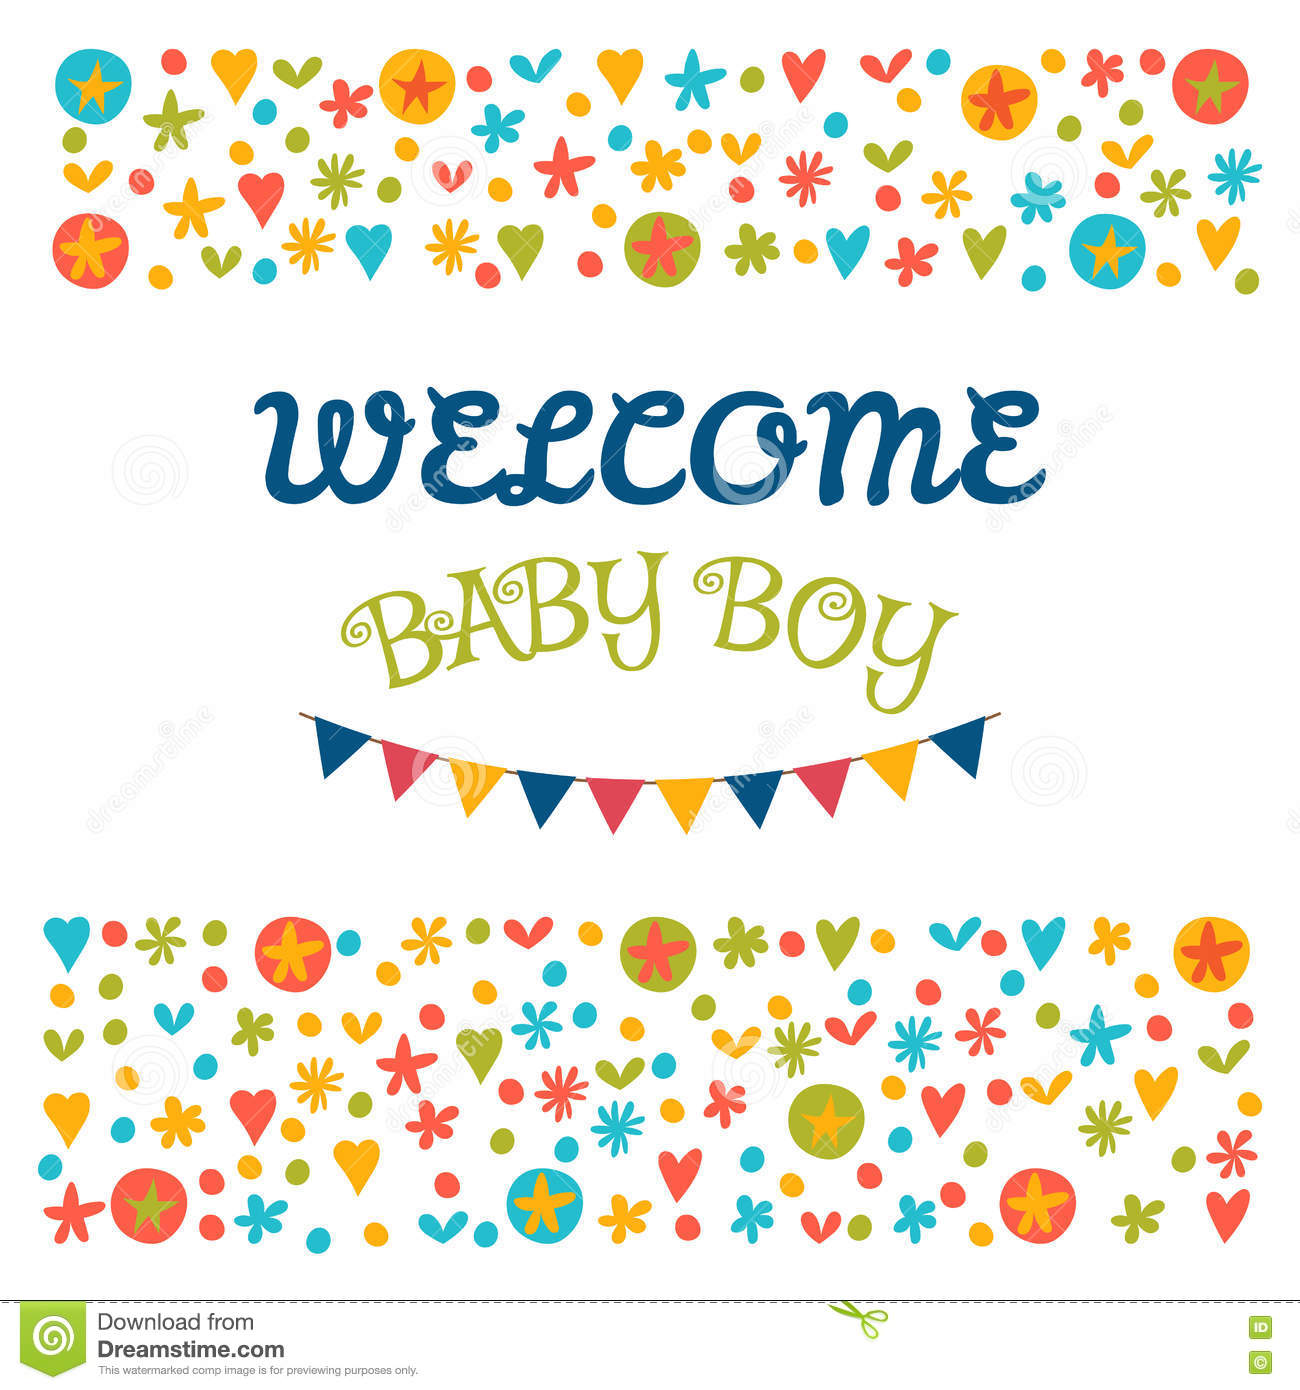 Welcome baby boy baby shower greeting card baby boy shower car download welcome baby boy baby shower greeting card baby boy shower car stock vector m4hsunfo